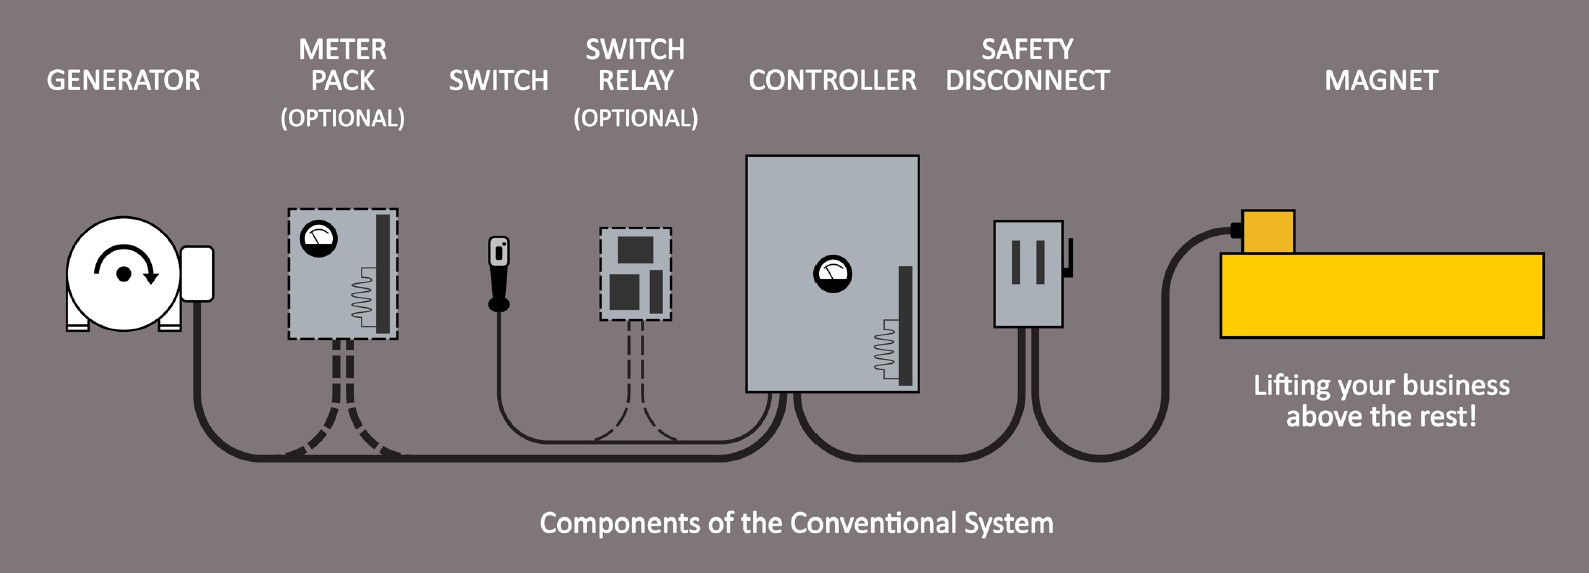 Components of the conventional system